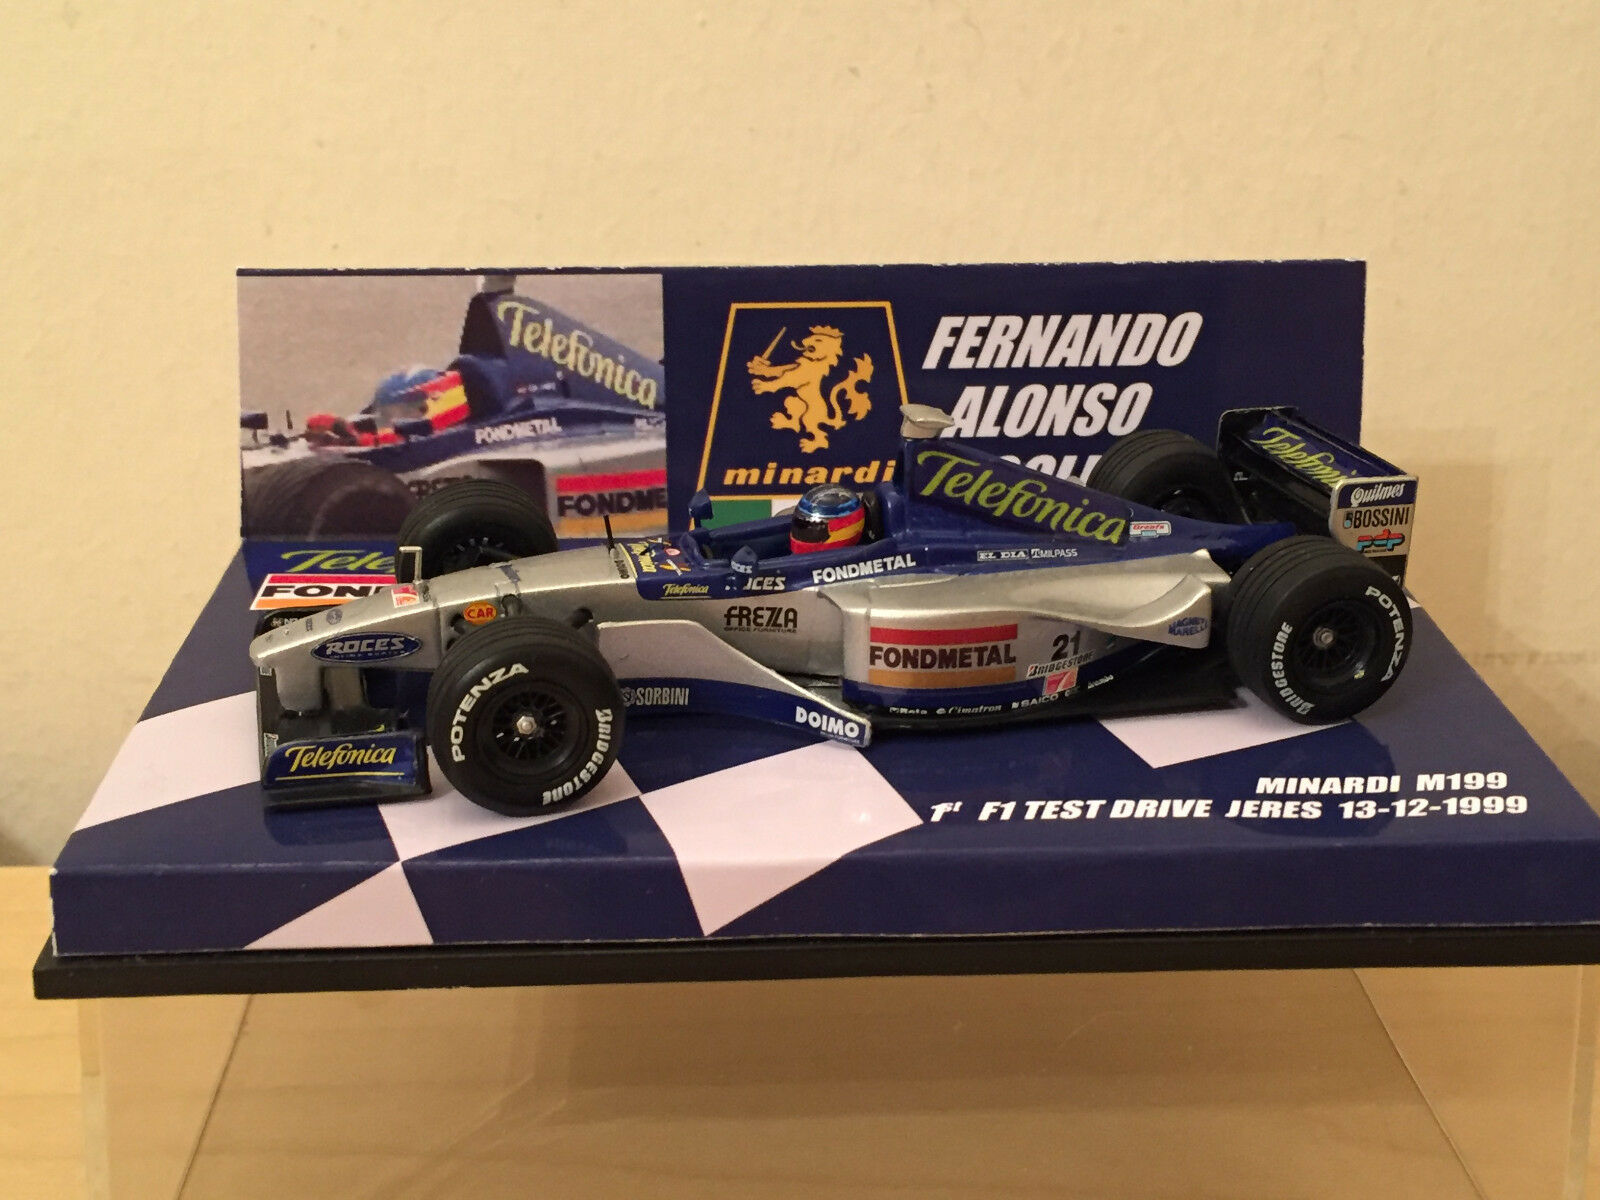 1 43 MINICHAMPS Minardi Ford M01 F ALONSO 1st F1 TEST 1999